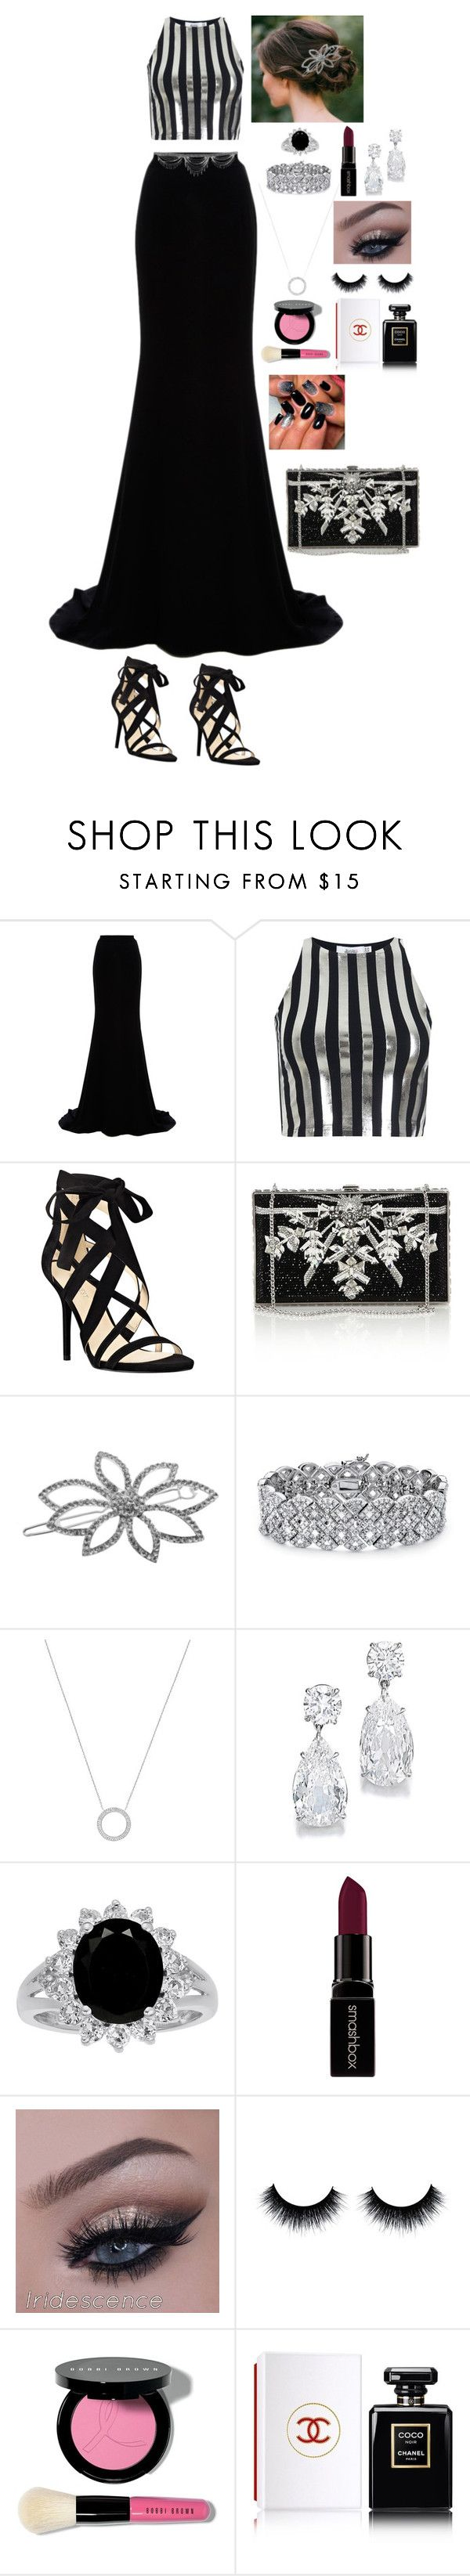 """""""Black and silver outfit"""" by ynessica ❤ liked on Polyvore featuring Naeem Khan, Bundy & Webster, Nine West, Judith Leiber, L. Erickson, Palm Beach Jewelry, Michael Kors, Smashbox, Bobbi Brown Cosmetics and Chanel"""